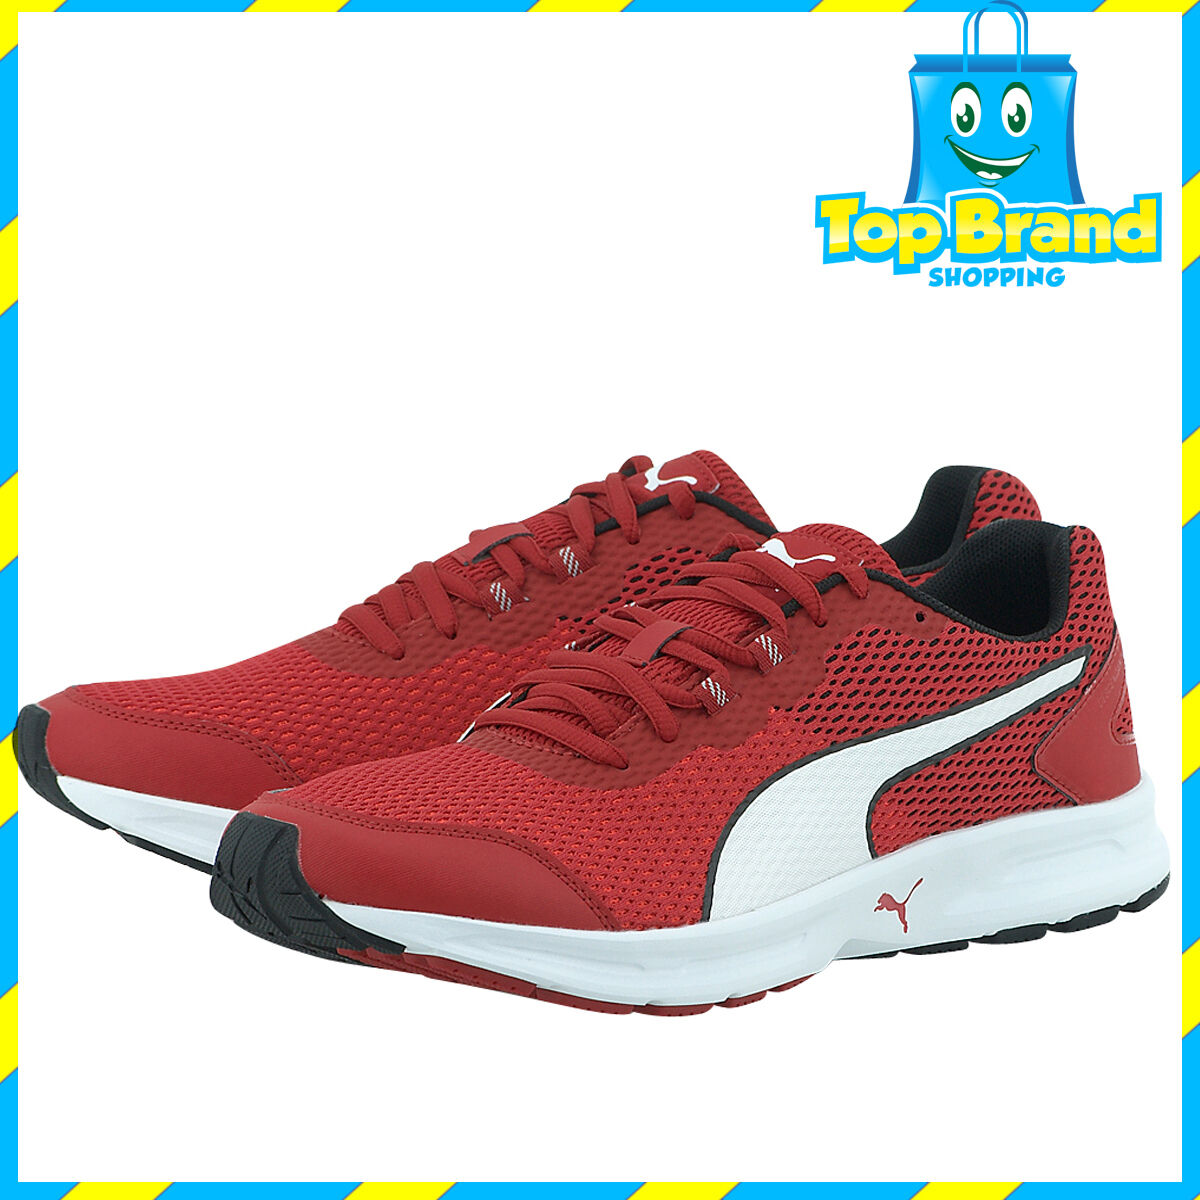 PUMA Uomo SPORTS bianca Barbados Cherry rosso bianca SPORTS gym scarpe joggers runners CHEAP deal 0f3025